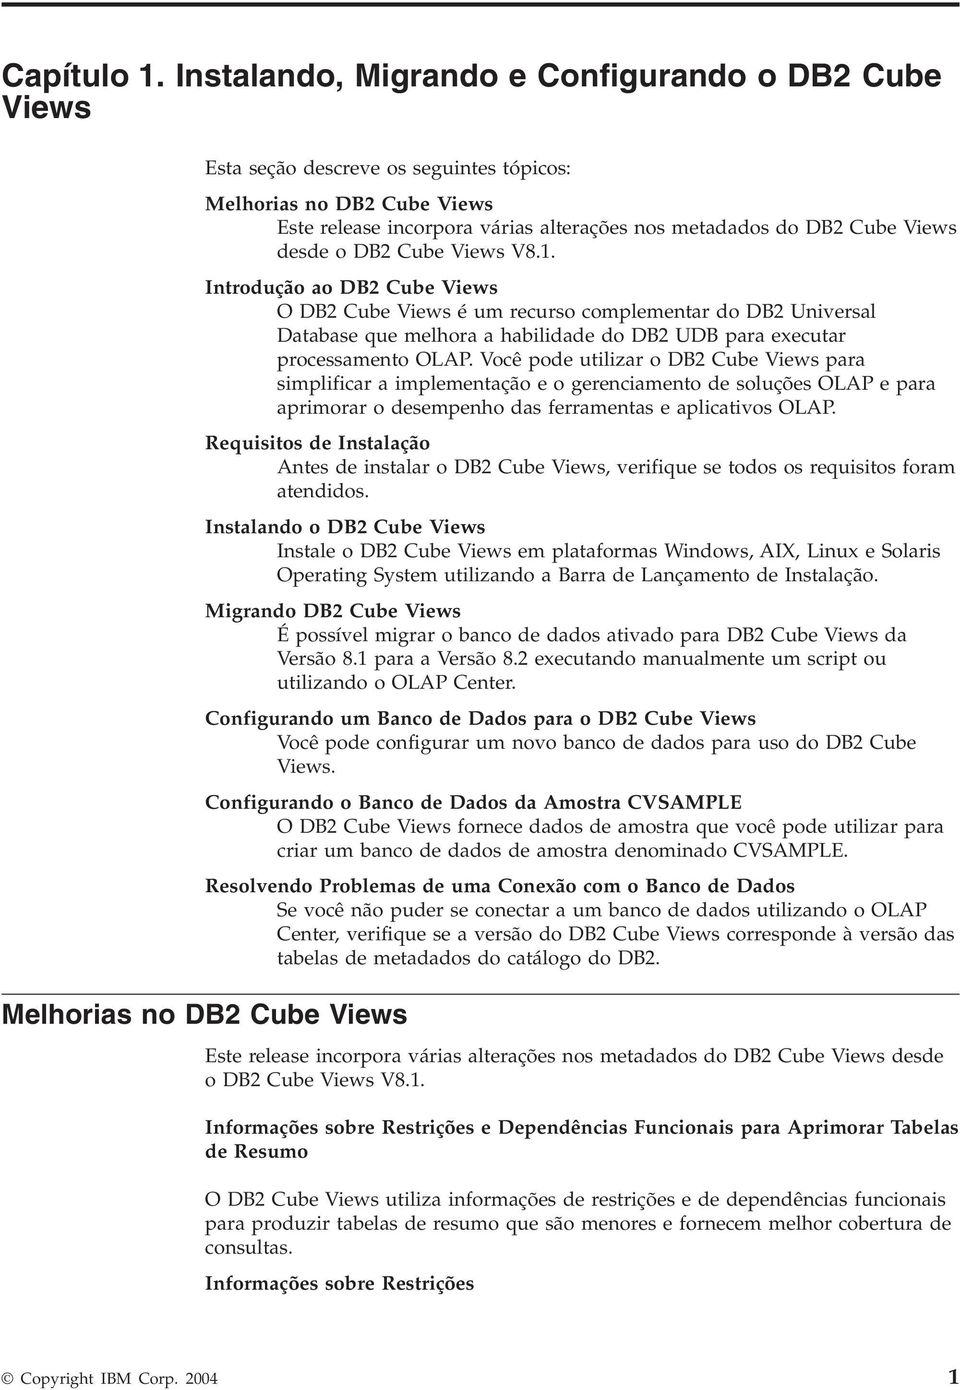 metadados do DB2 Cube Views desde o DB2 Cube Views V8.1.